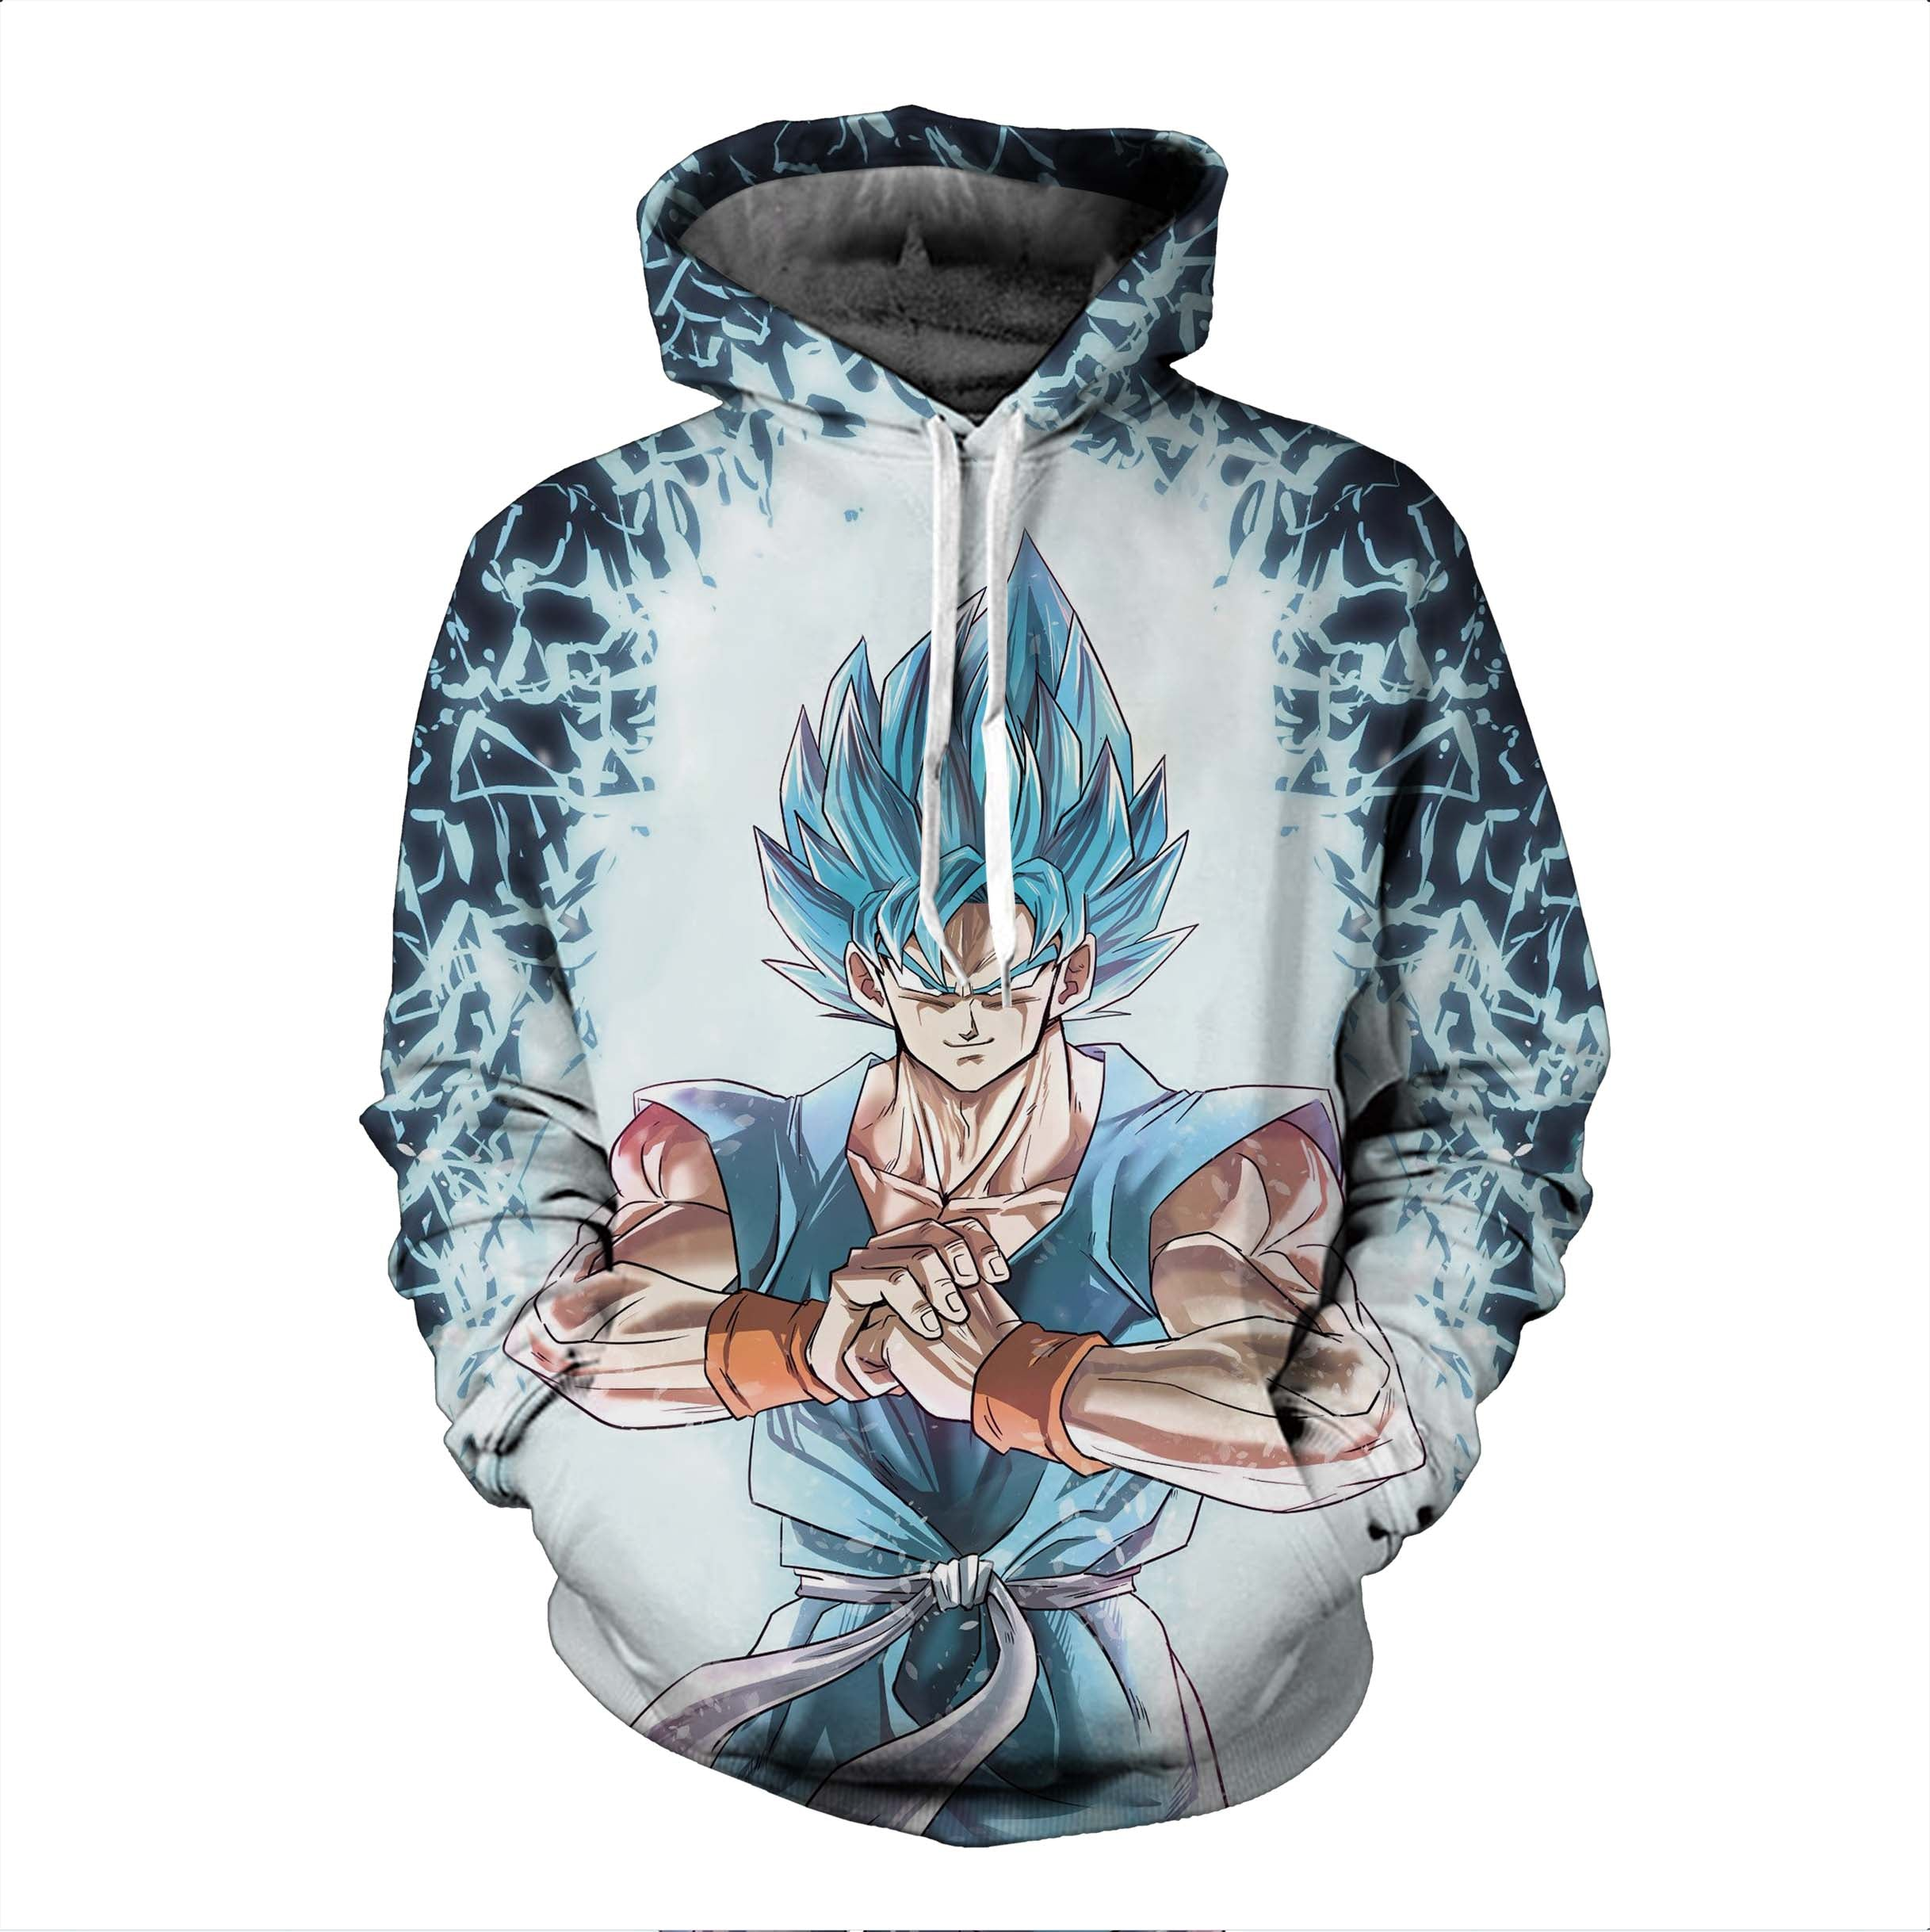 Dragon Ball Hoodies, 3D Clear Print, Best Quality : Design 6566